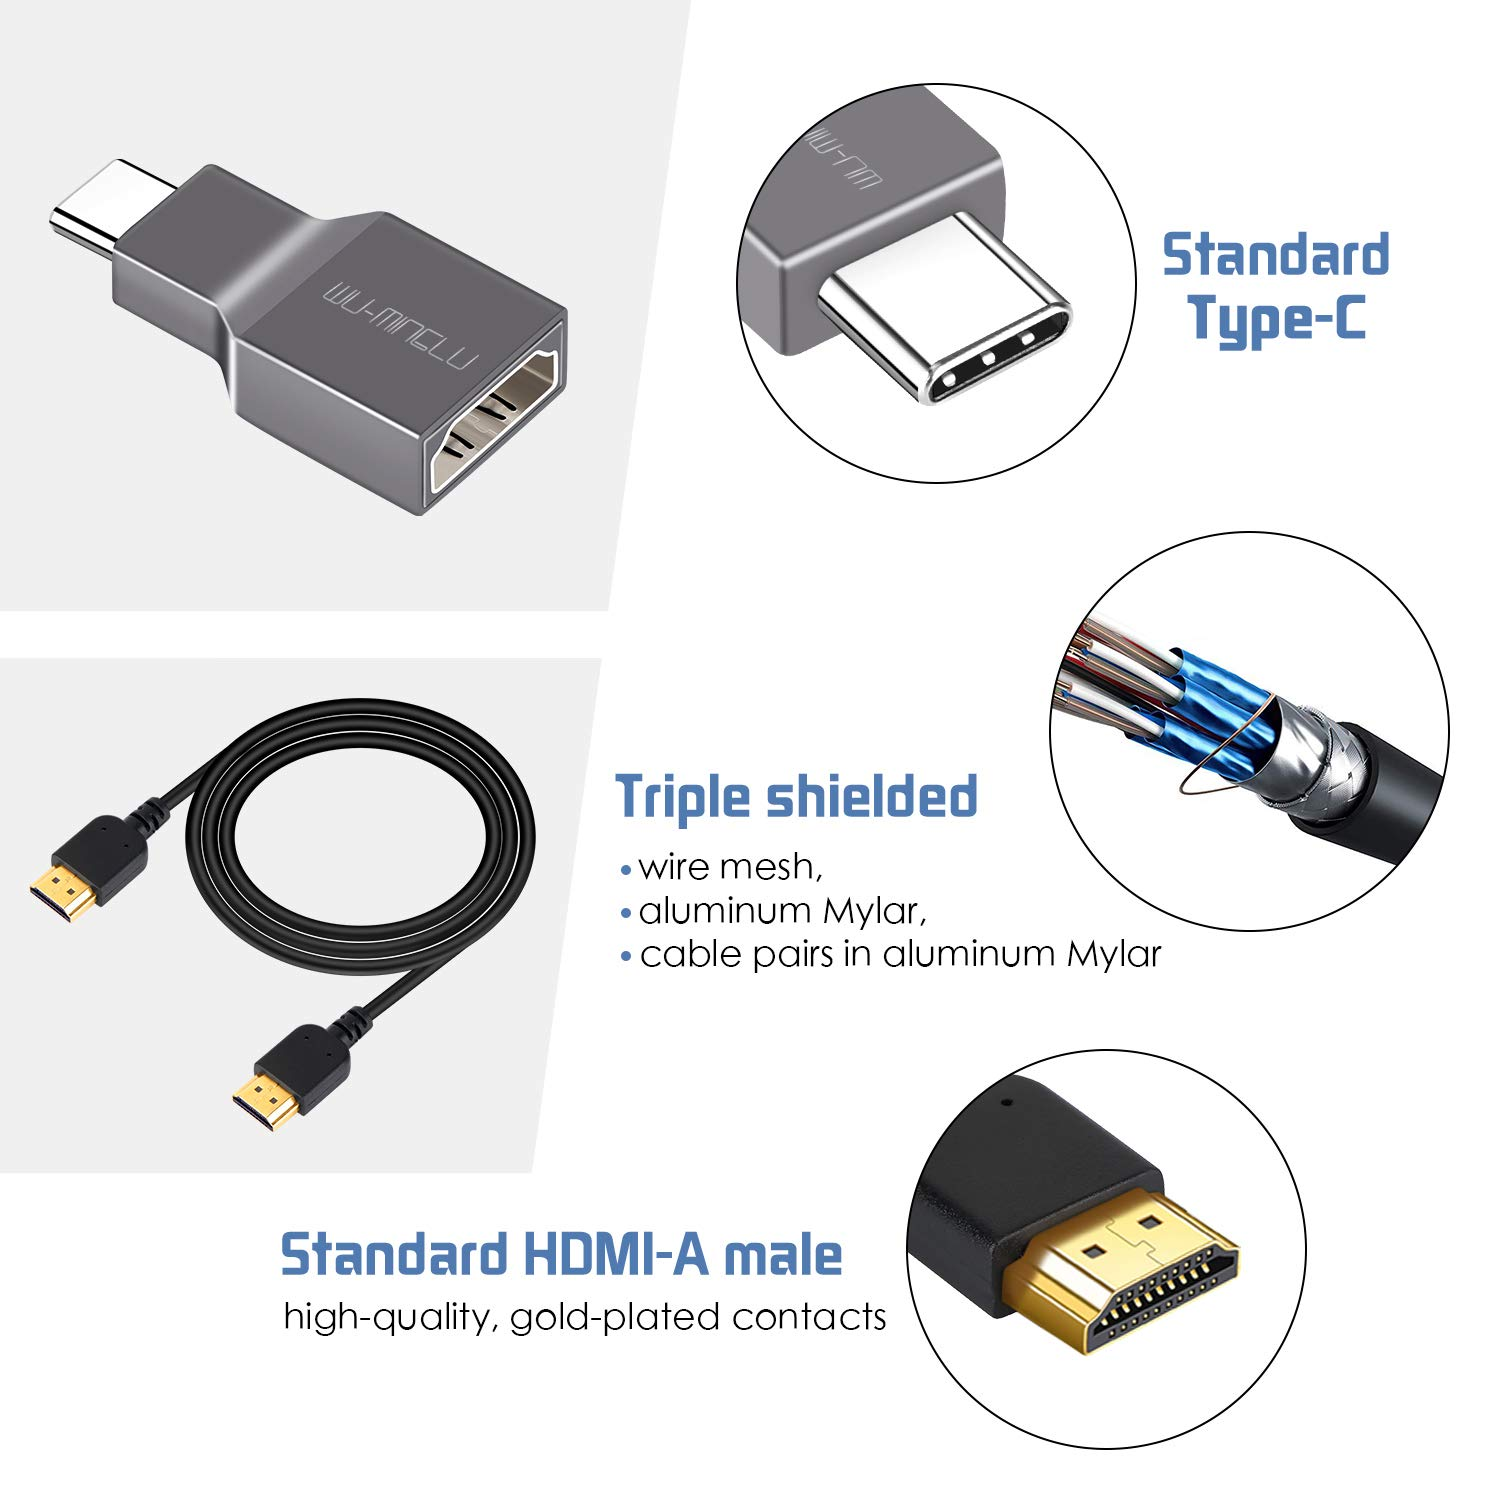 USB C to HDMI Adapter,WU-MINGLU USB 3.1 Type C(Thunderbolt 3) to HDMI 4K Adaptor Converter Include HDMI Cable 1M Compatible with Macbook/Macbook Pro,Samsung S8/9/Note8/9,Huawei Mate 10/P20 and More